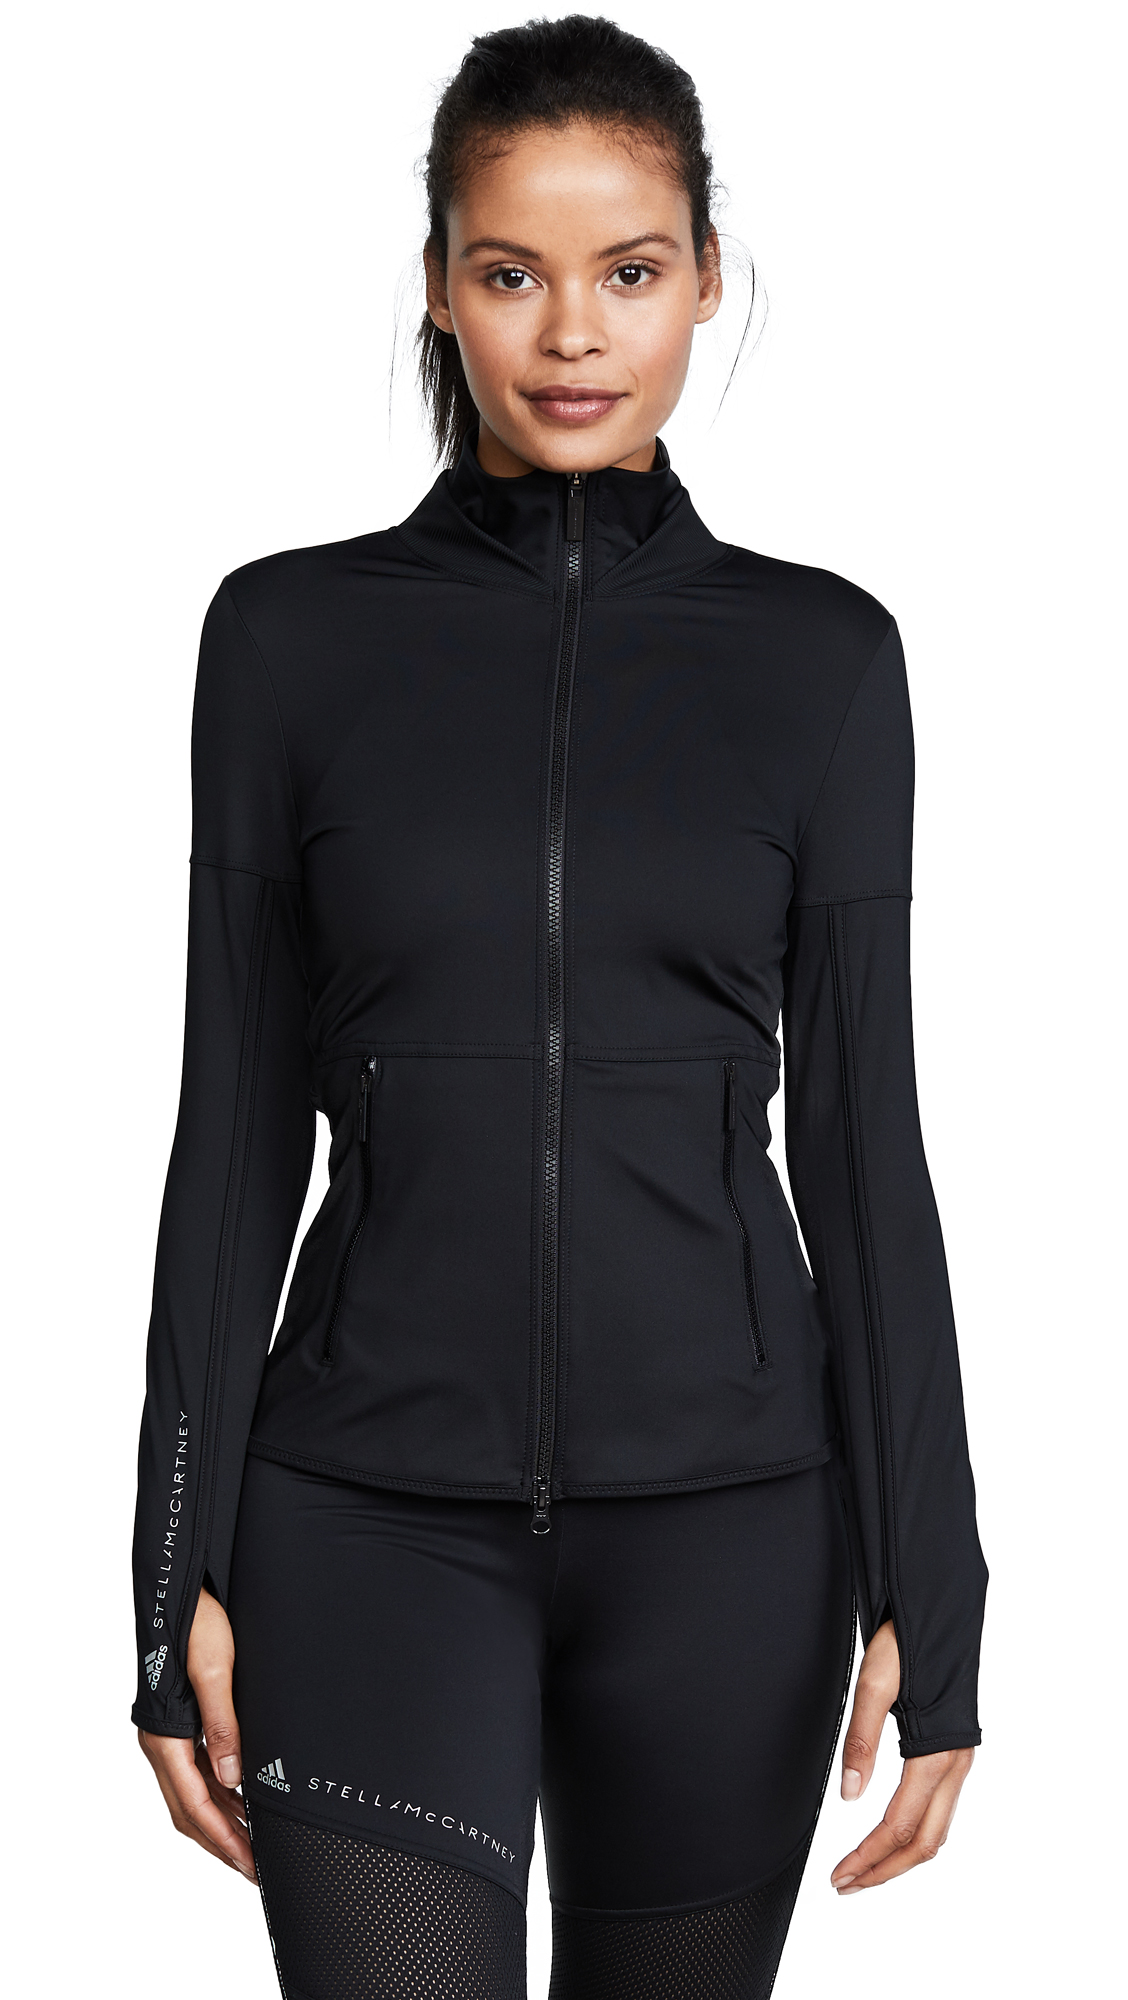 Performance Ess Midlayer Zip Up Jacket, Black